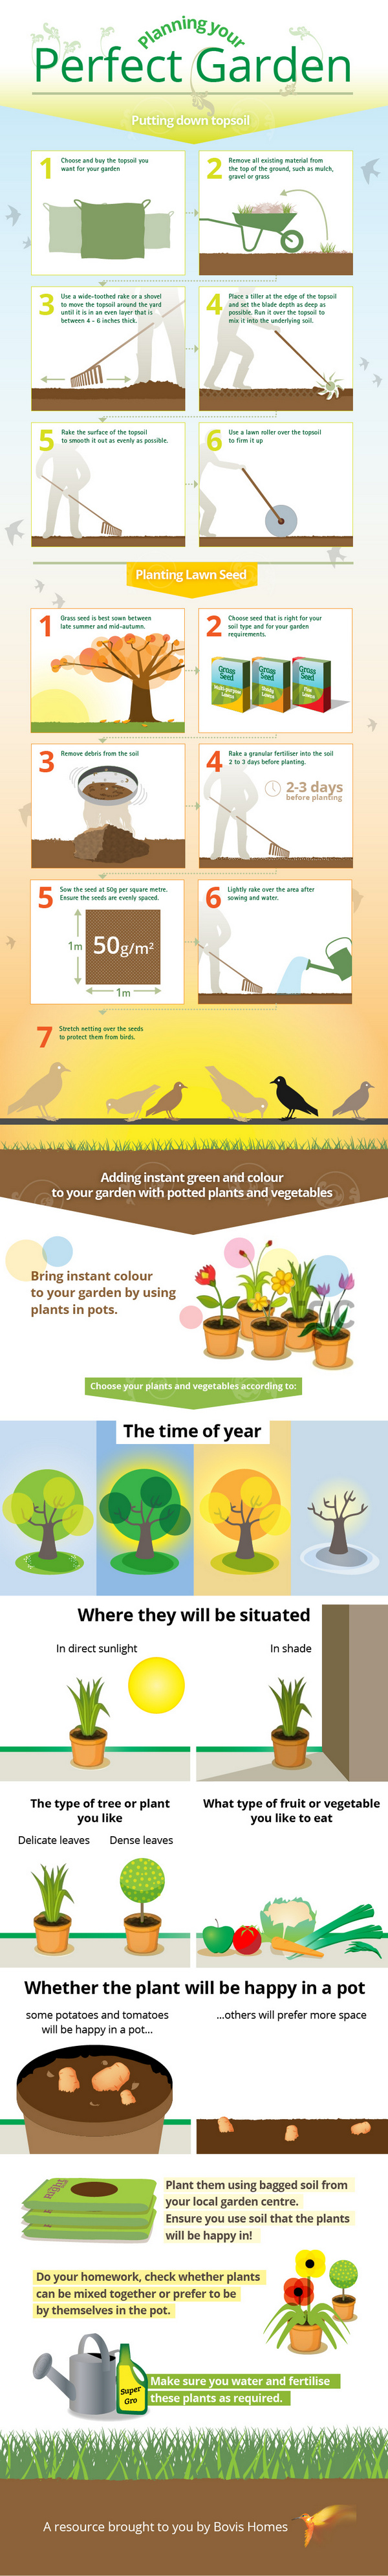 Planning your perfect garden